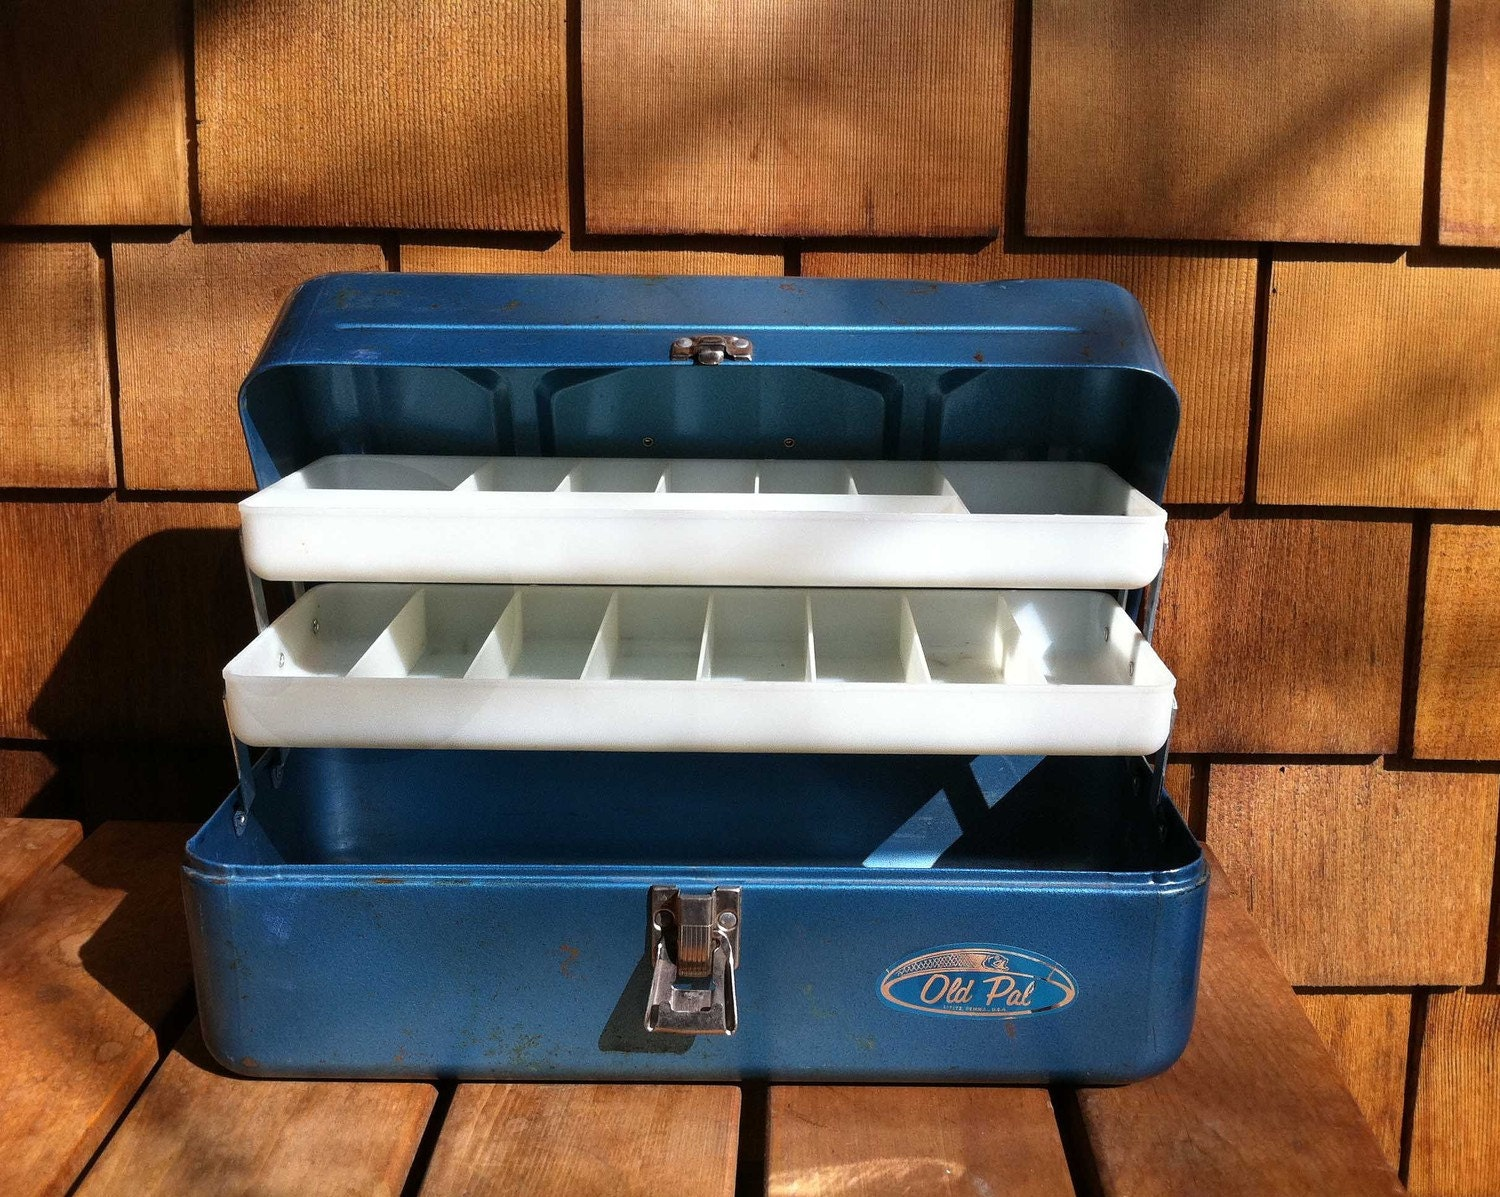 REDUCED Vintage TACKLE BOX by Old Pal Go by VintageExpedition